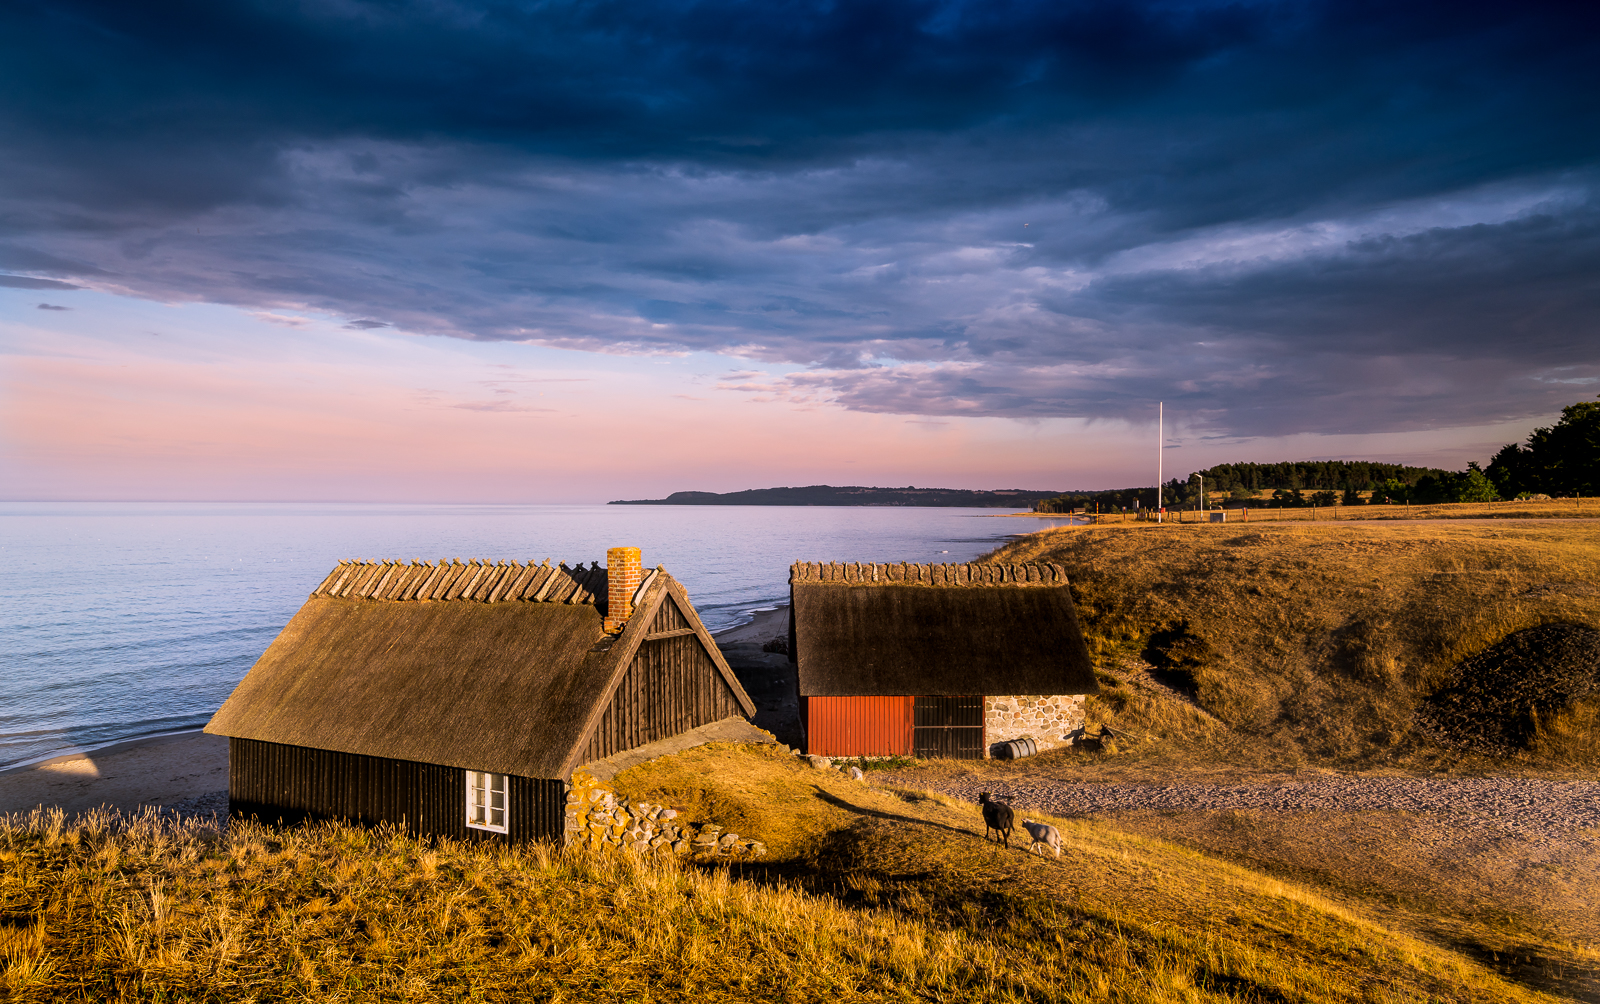 The fishing huts of Ravlunda